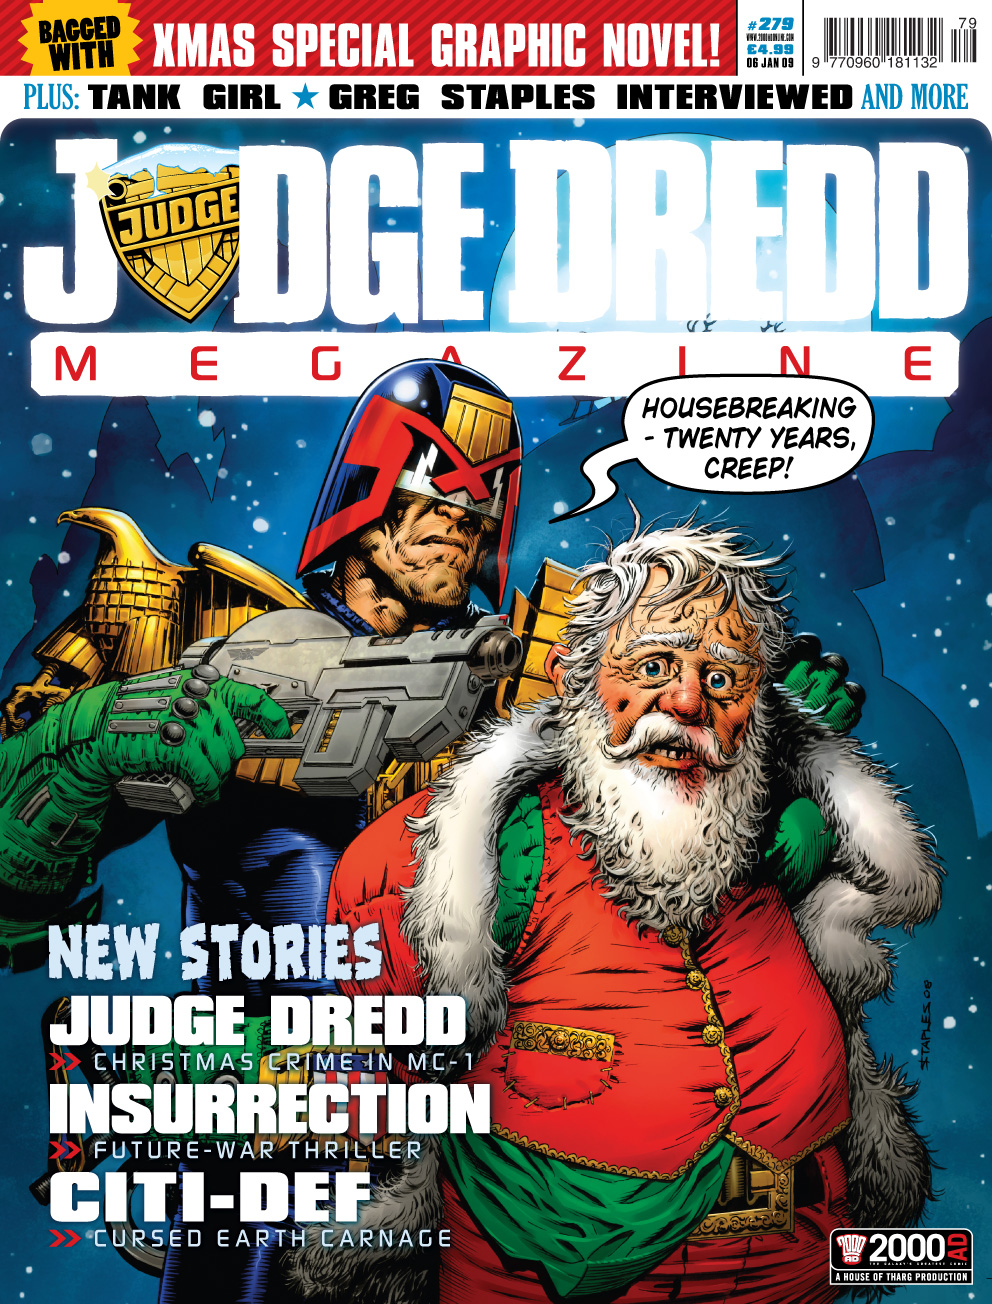 Figure 20 Judge Dredd Megazine 279 6 January 2009